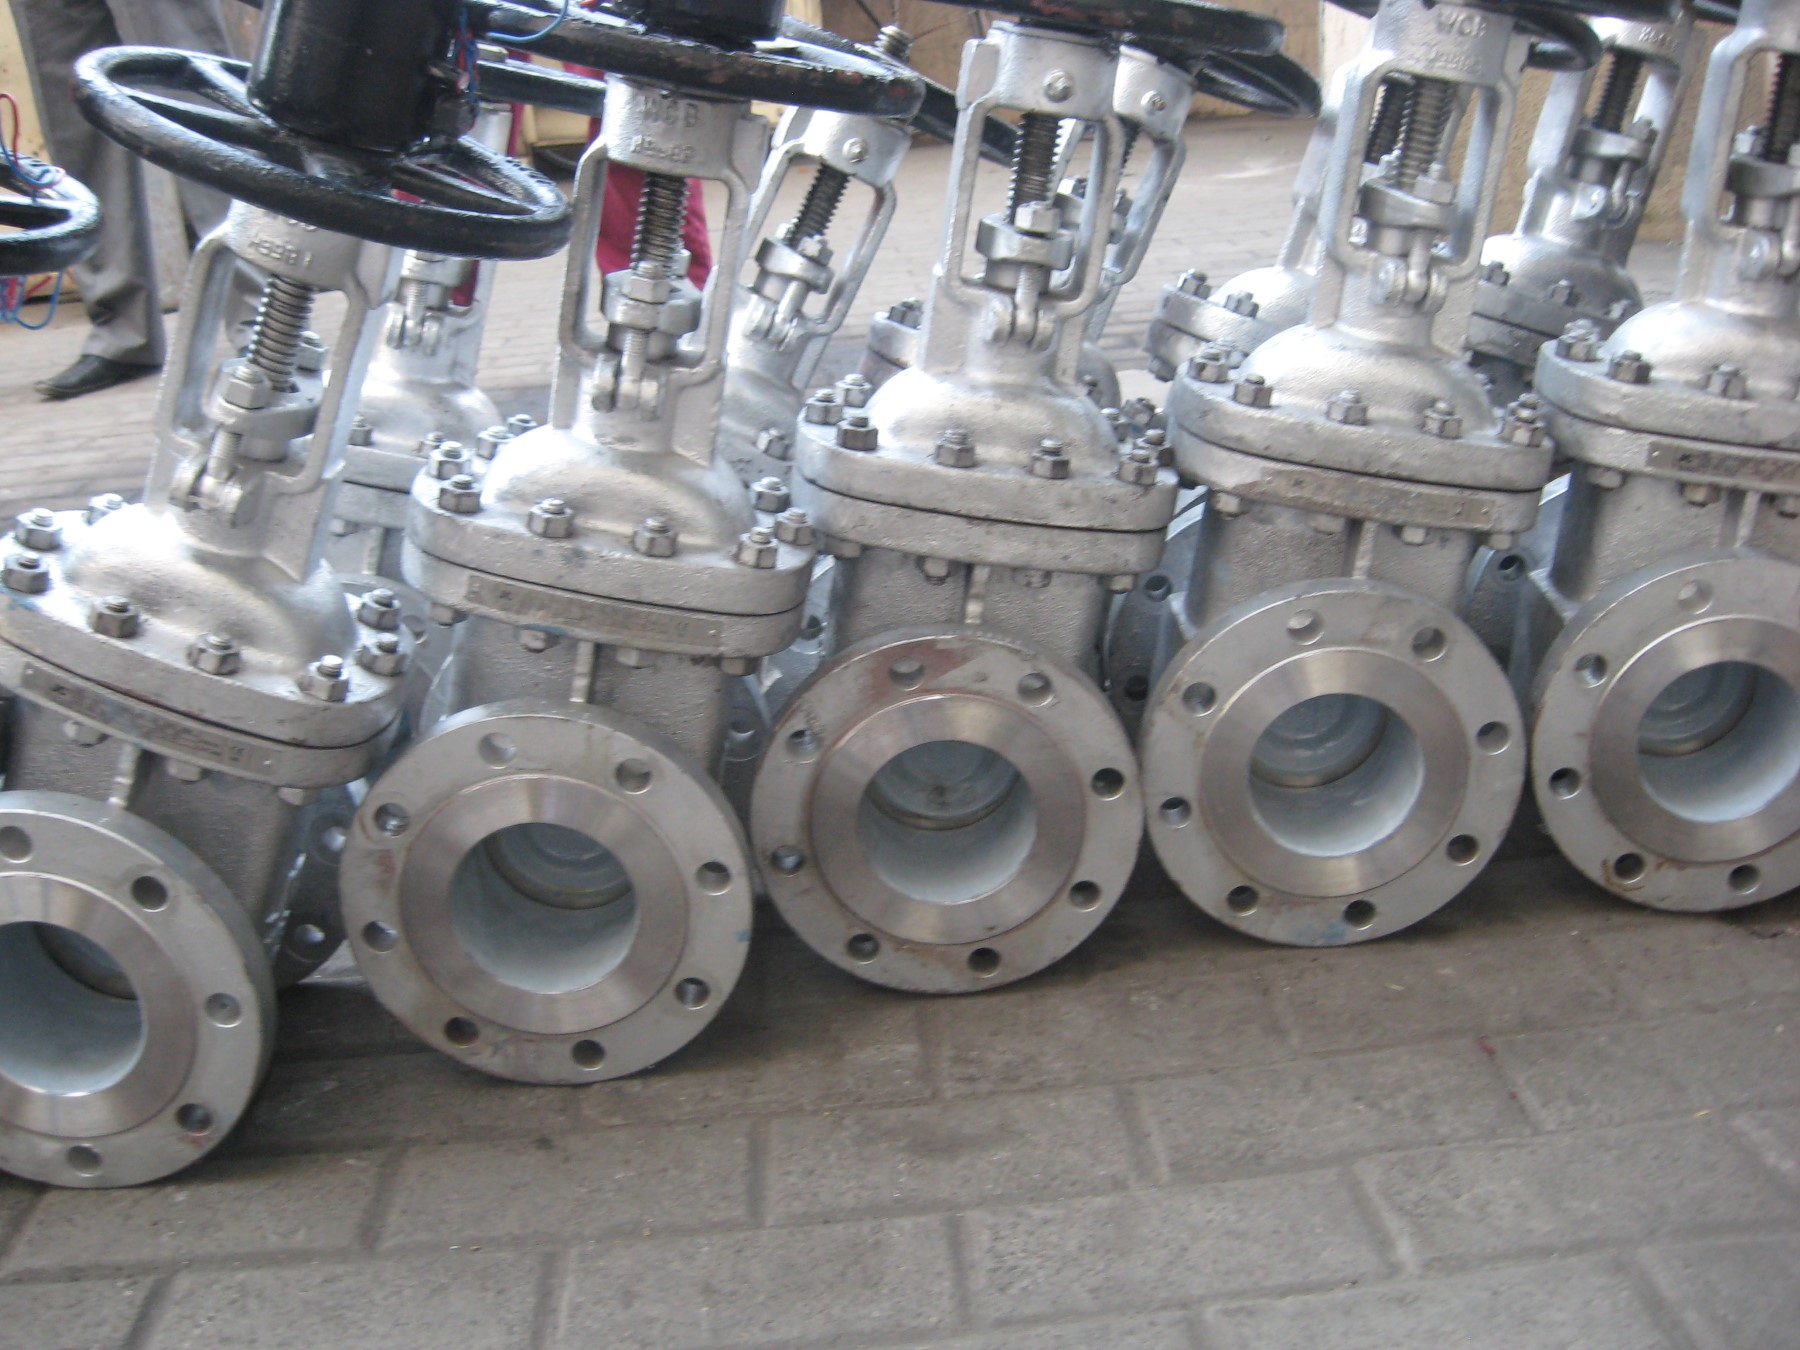 Coating on the Valve Surface